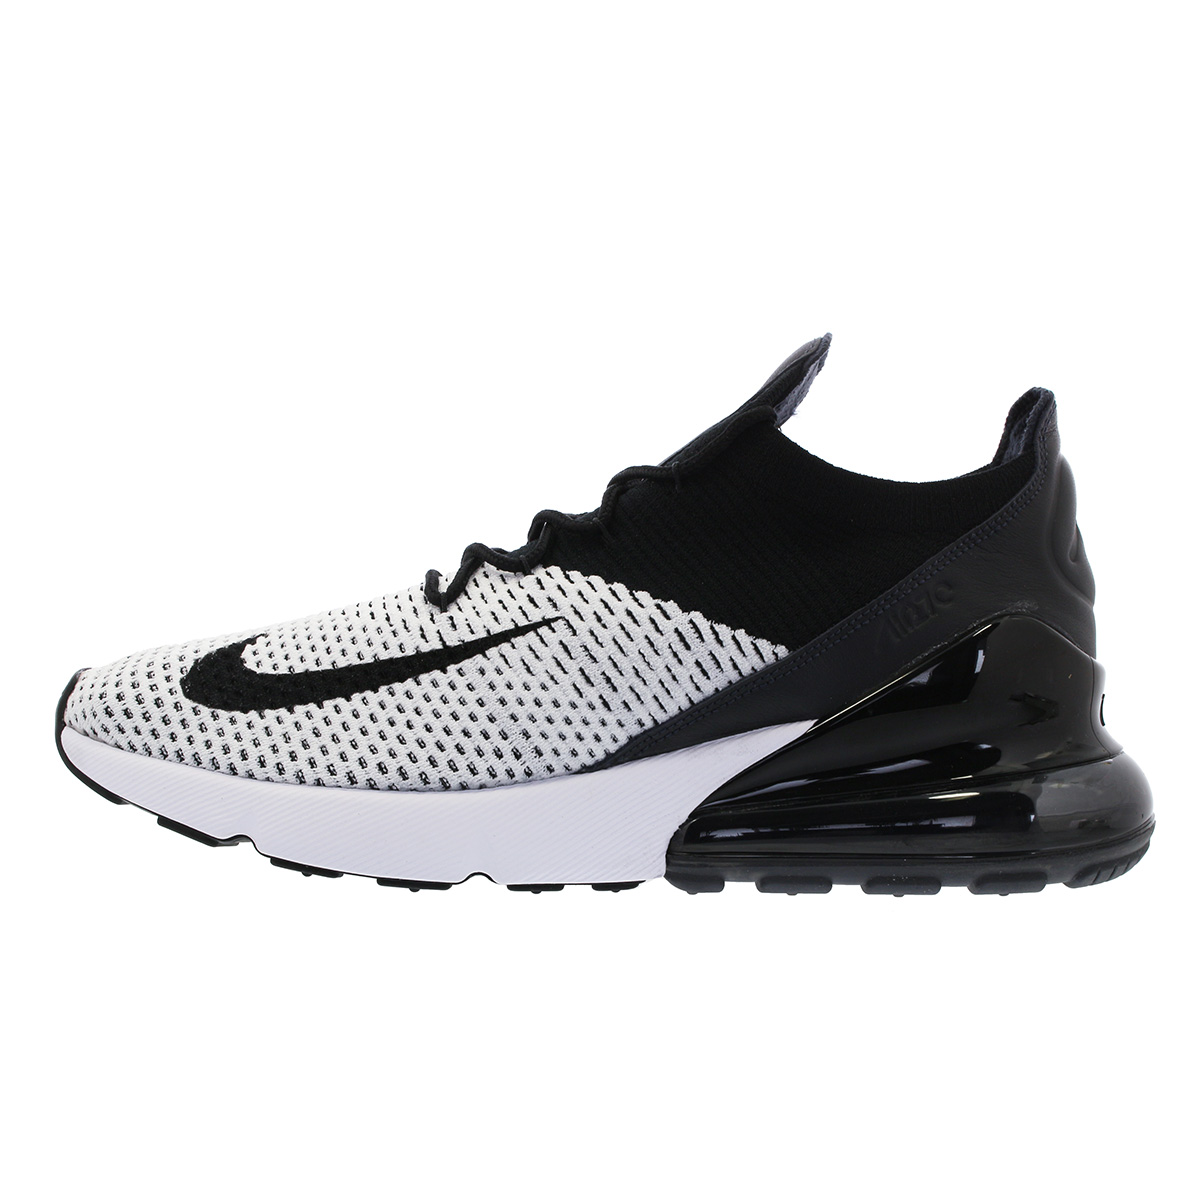 36799ed88169e NIKE AIR MAX 270 FLYKNIT Kie Ney AMAX 270 fried food knit WHITE BLACK ANTHRACITE  ao1023-100